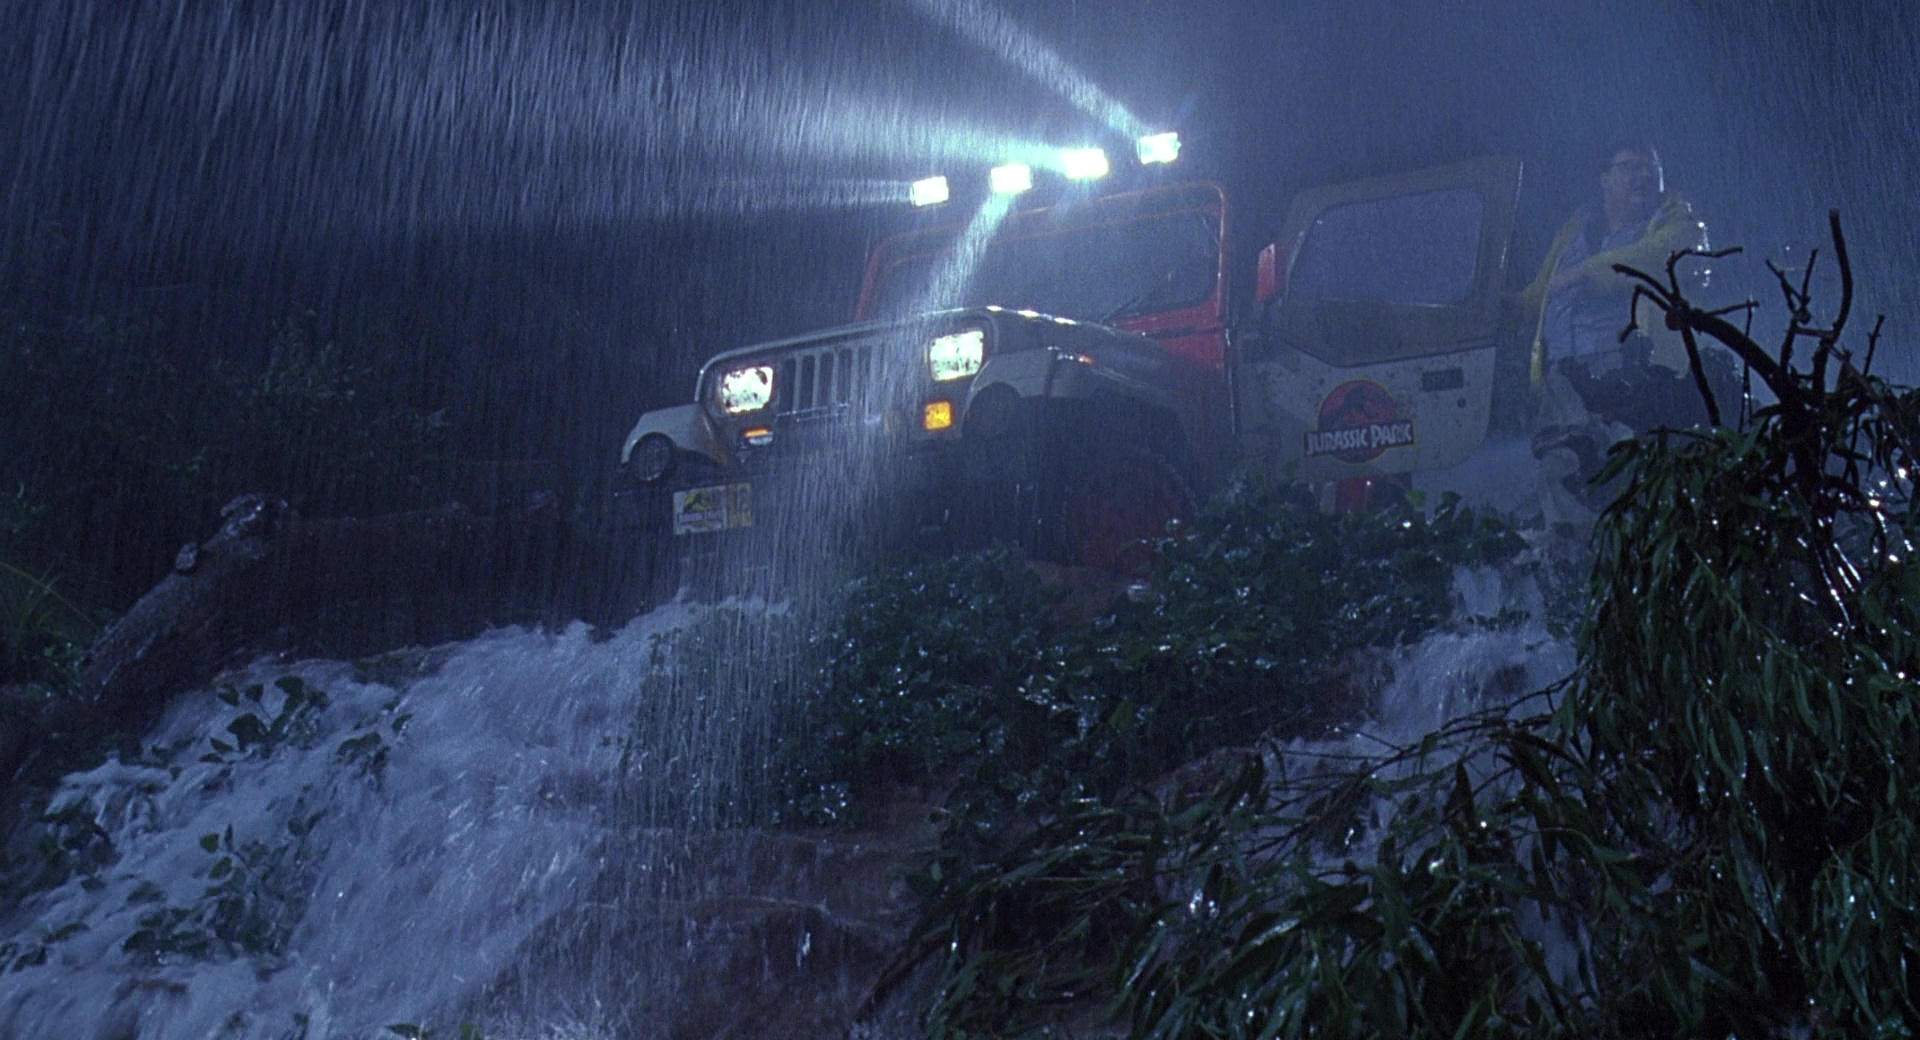 Jeep Wrangler Cars In Jurassic Park on 2015 Cadillac Escalade